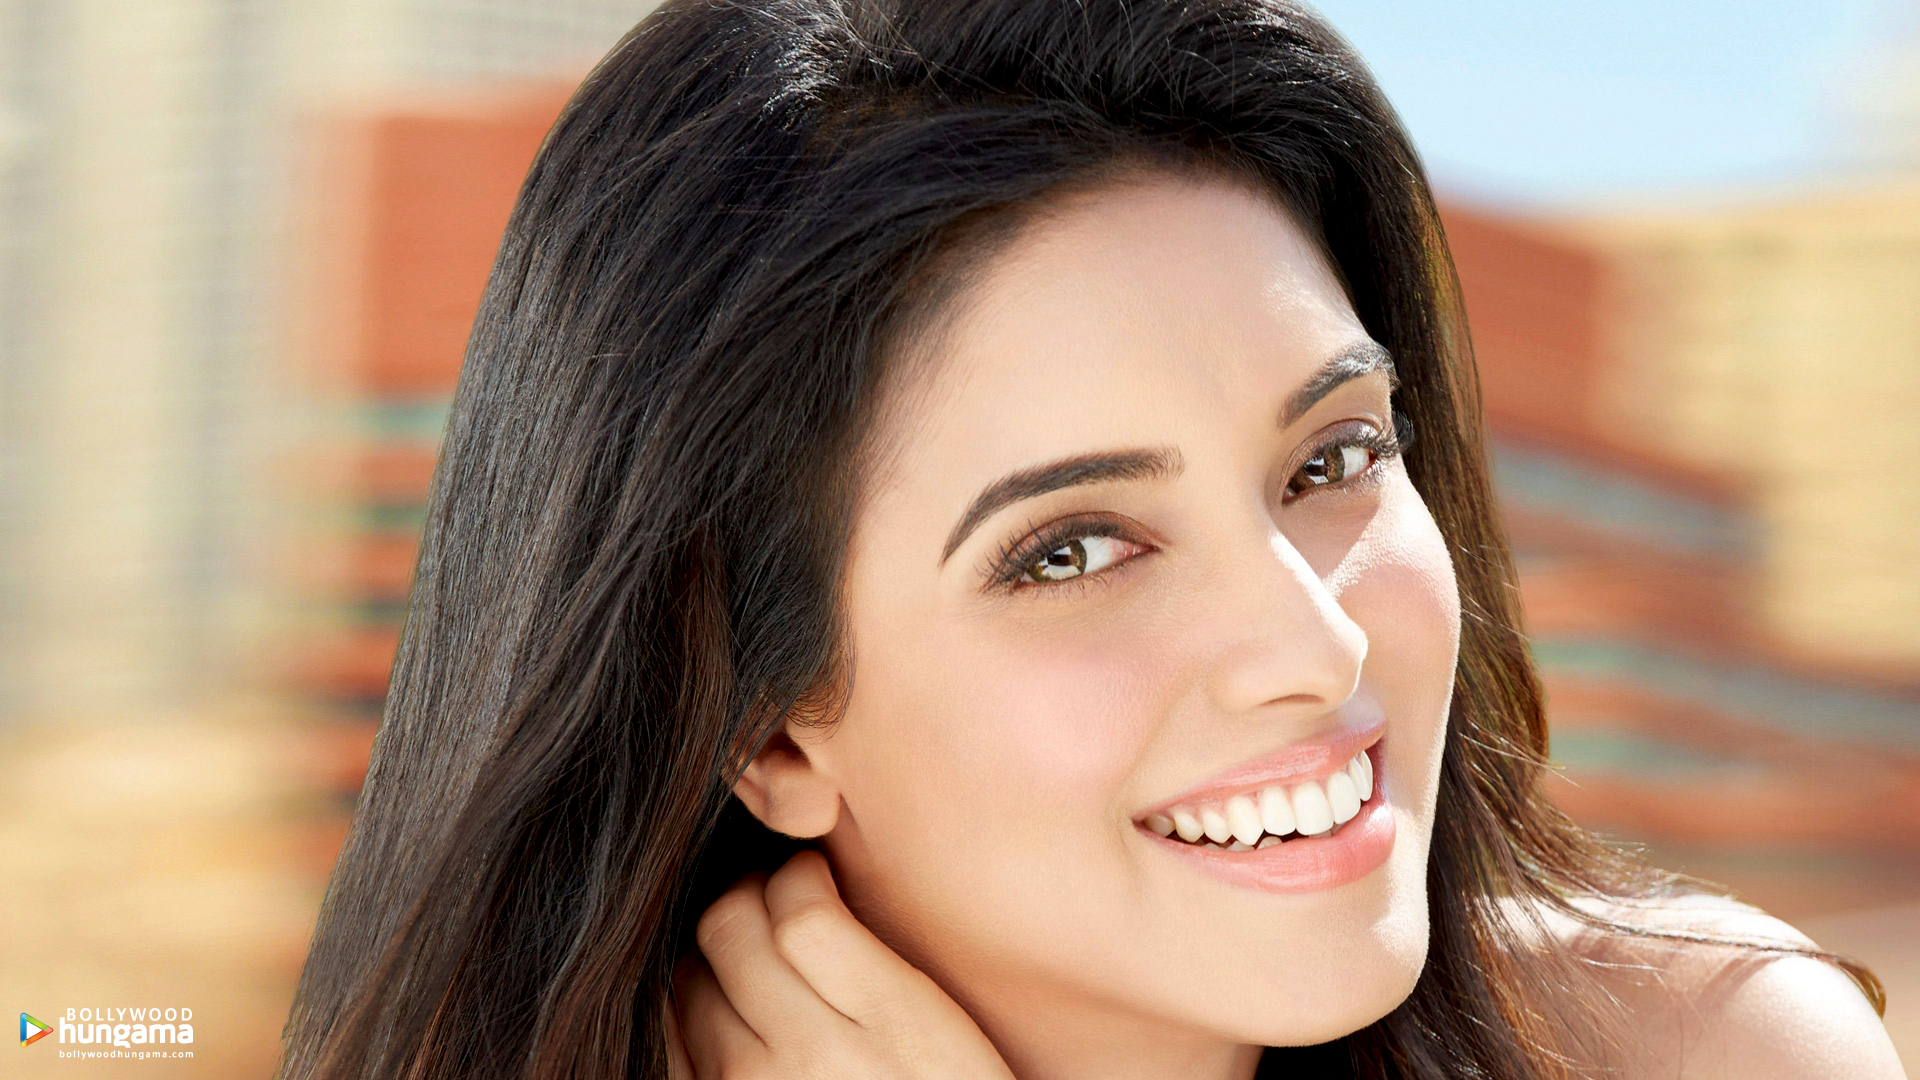 asin wallpapers asin 33 bollywood hungama asin wallpapers asin 33 bollywood